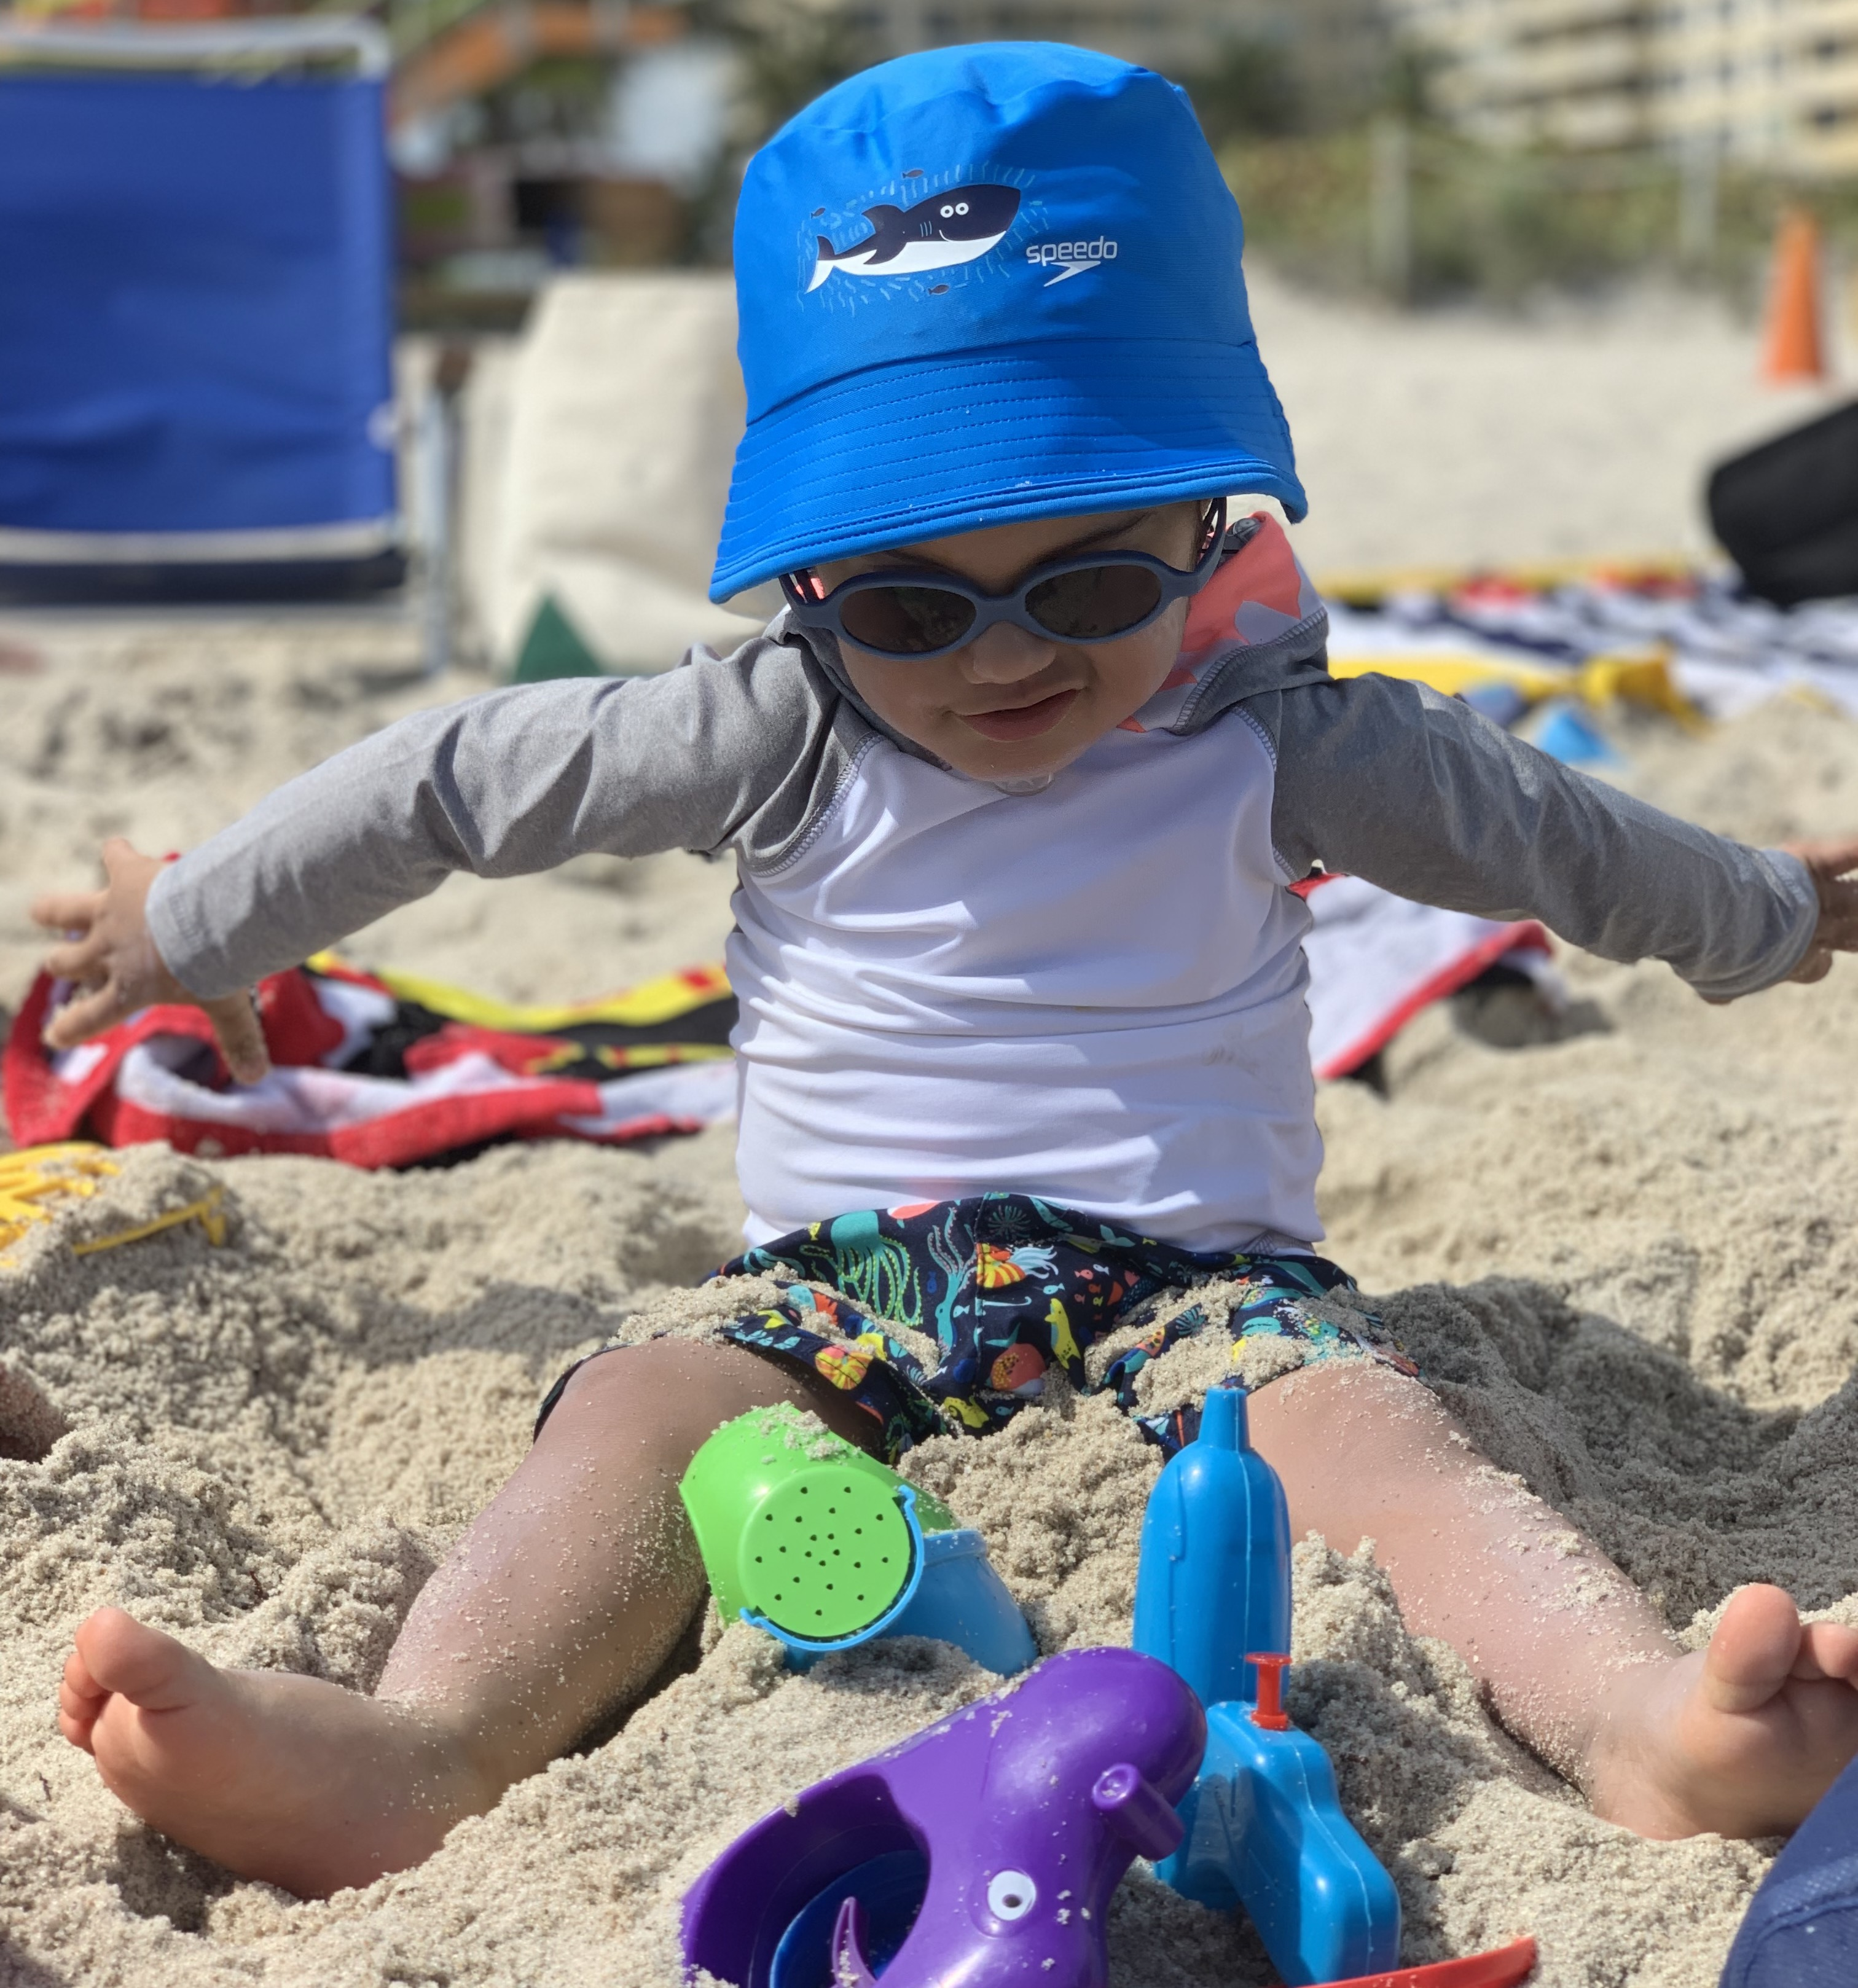 Jaxson playing in sand.